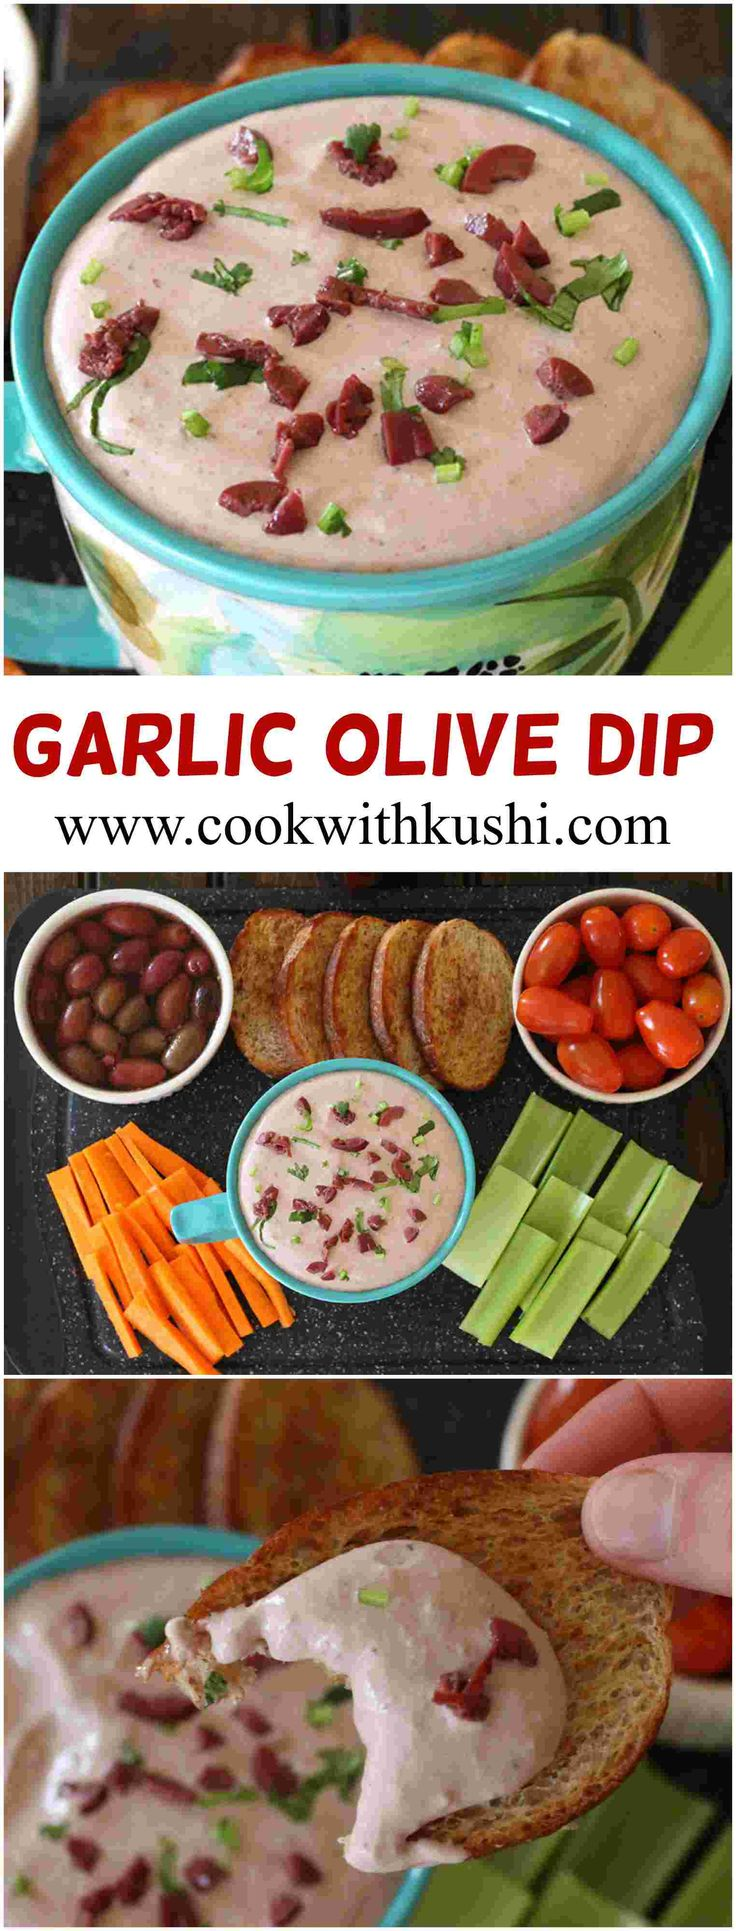 Garlic Olive Dip is super easy to make creamy and addictive dip that is perfect for entertaining guests this spring season.  #ad, #OlivePearlsEaster #Pearlsolives, #appetizer #dip  #Easter #GlutenFreeRecipes# Holiday #kalamataolives #lunch #dinner #spread #spring @pearlsolives